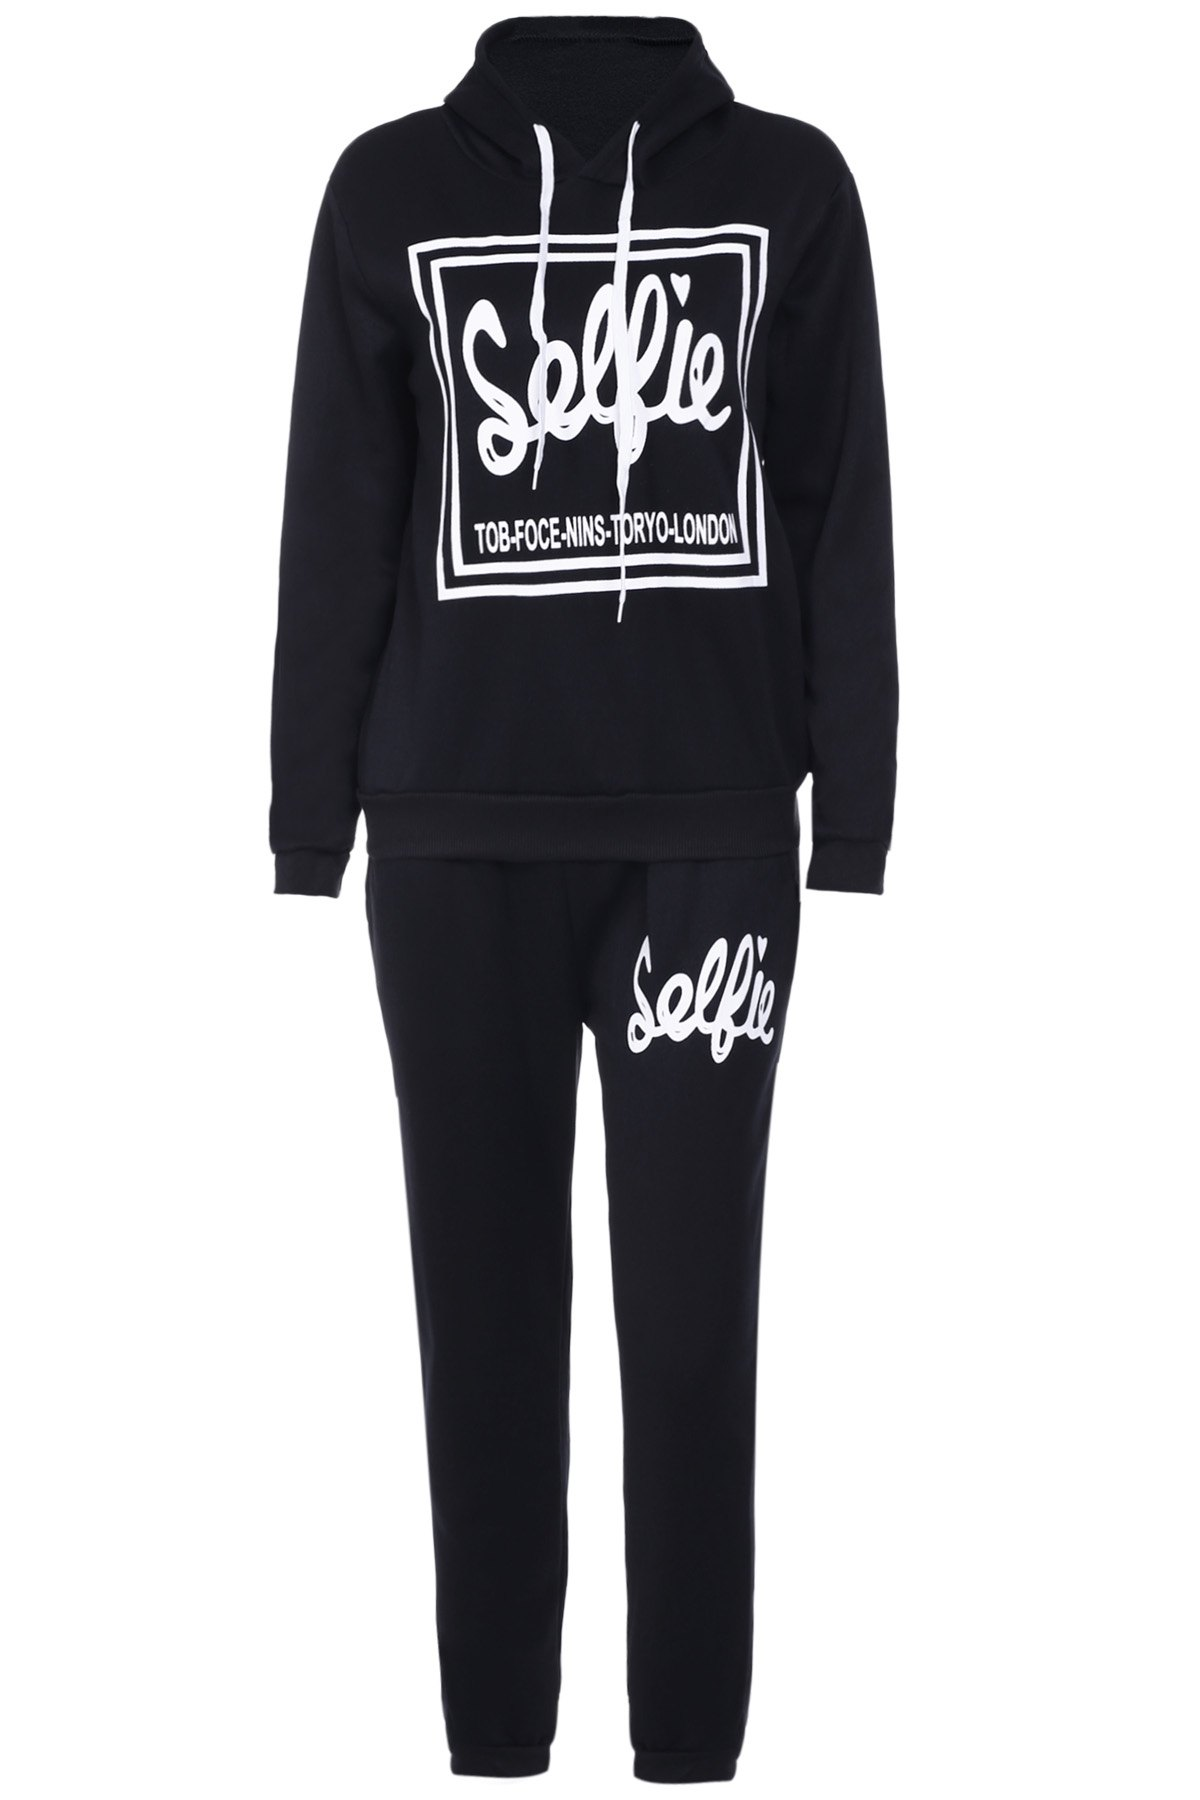 Active Women's Hooded Long Sleeve Letter Printed Hoodie and Pants Suit